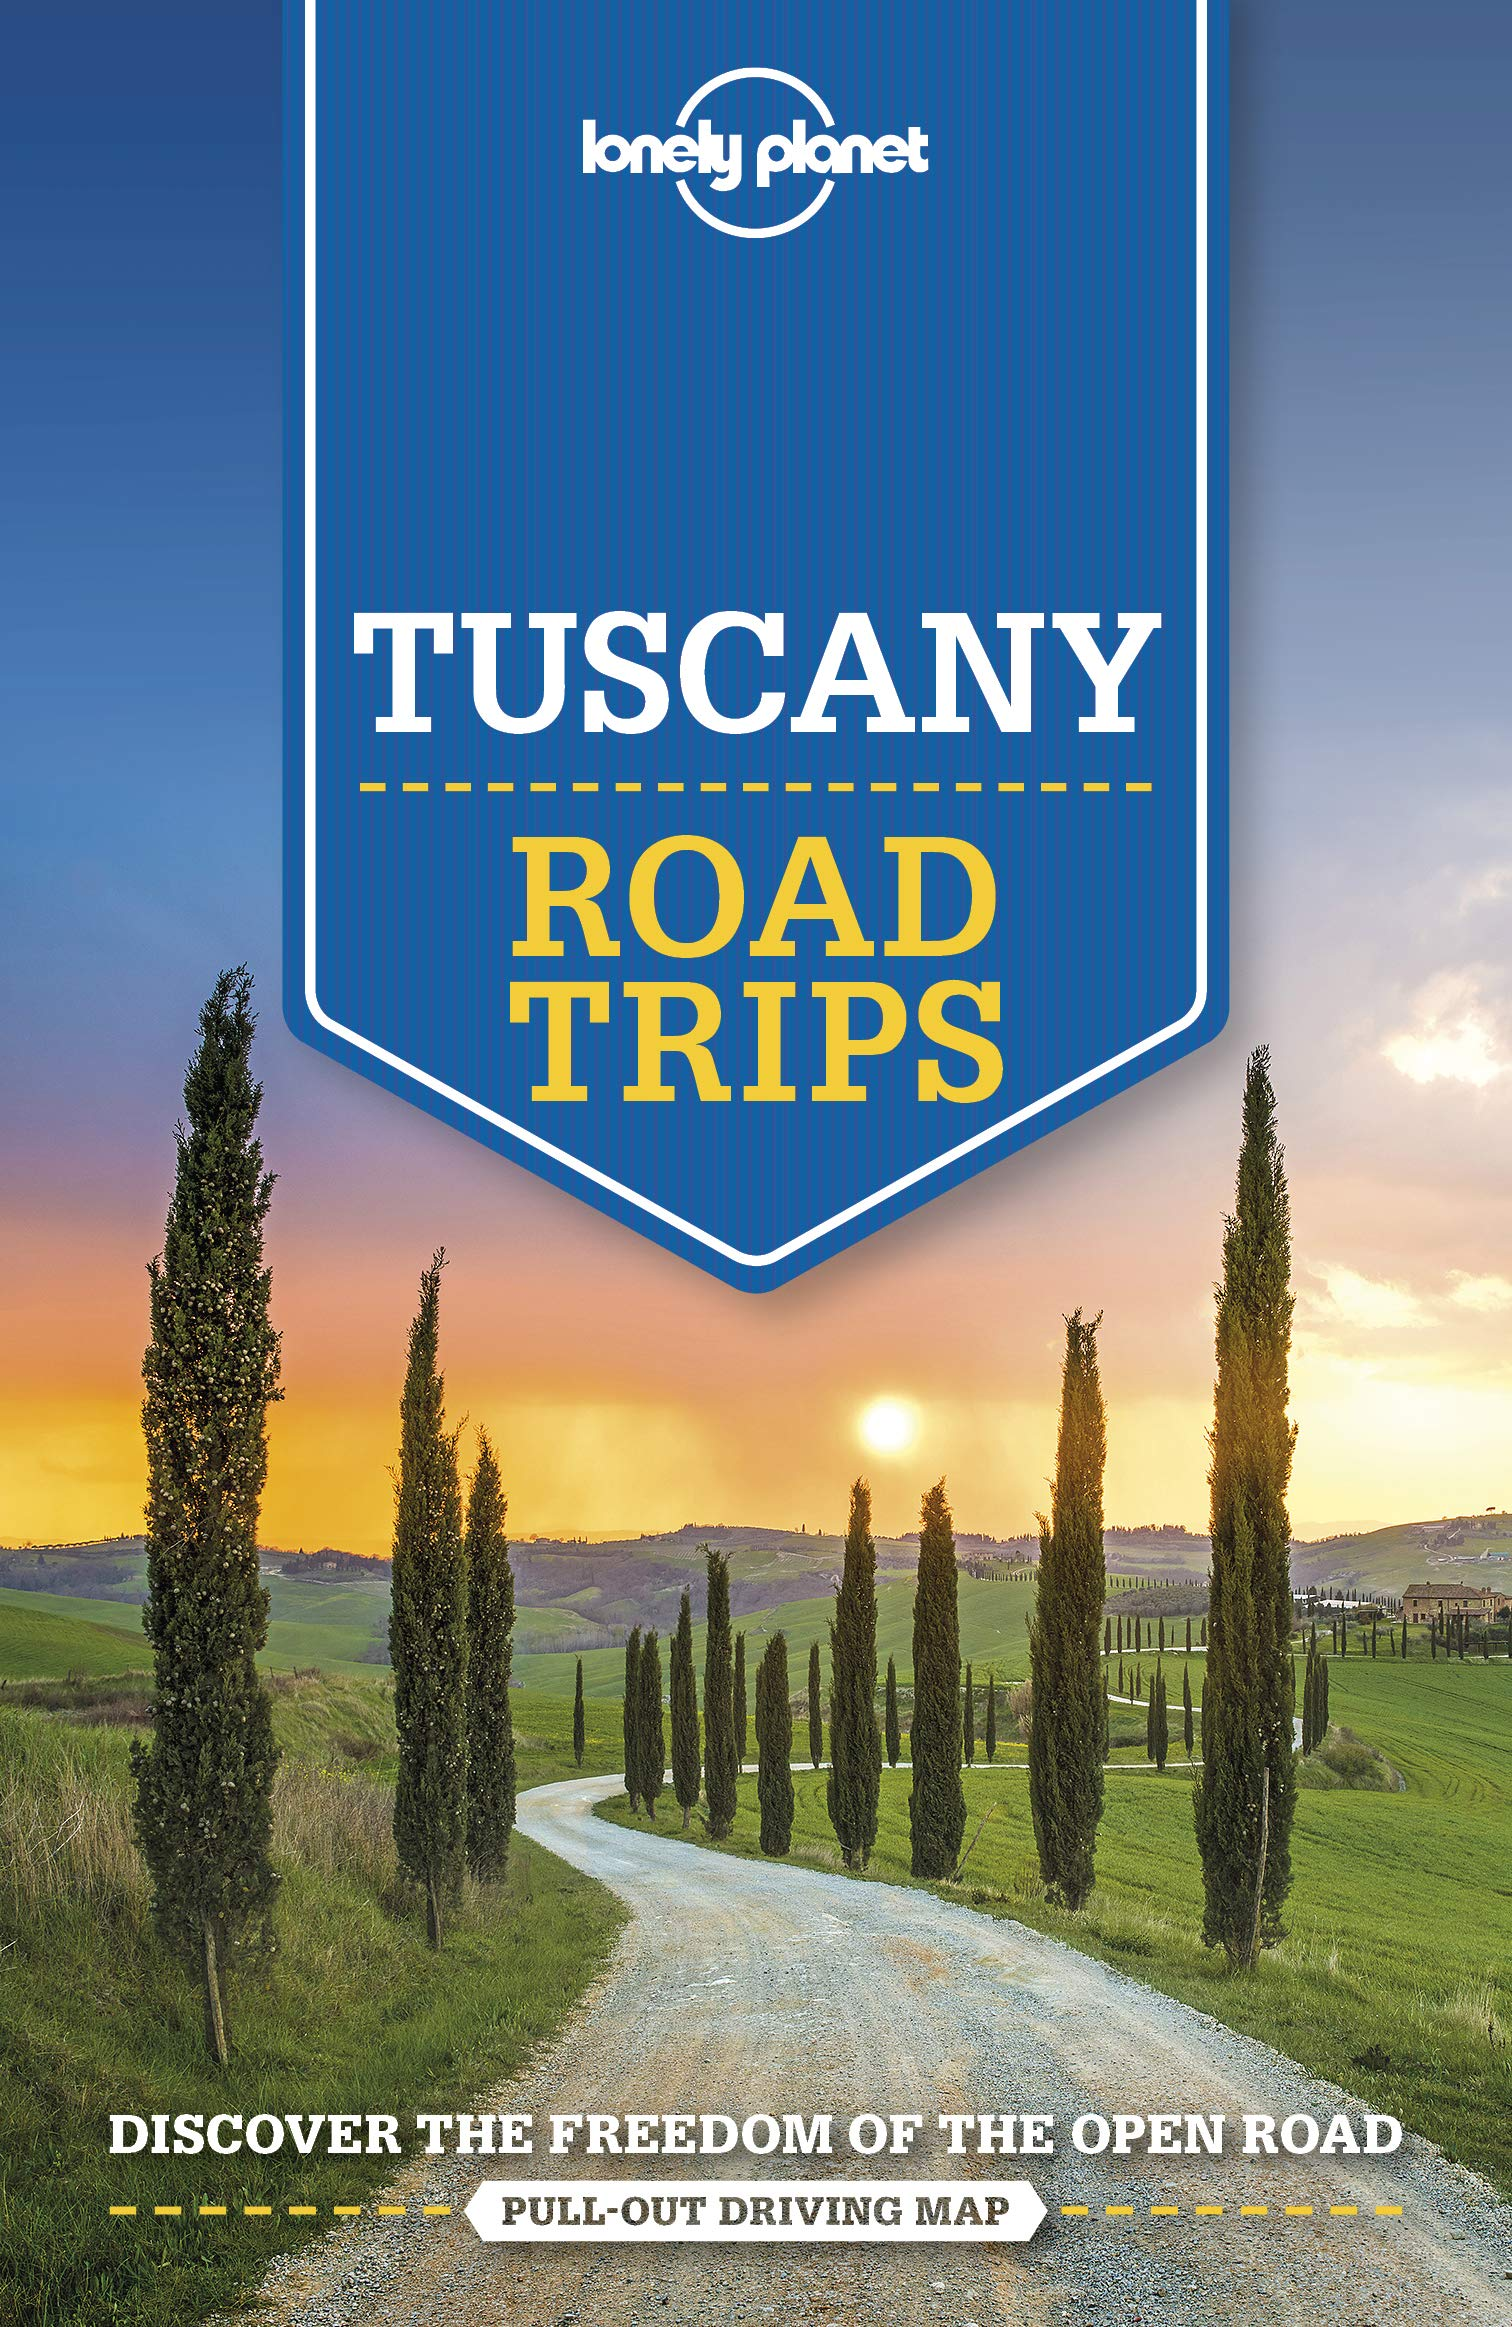 Tuscany Lonely Planet Road Trips 9781786575678  Lonely Planet Road Trips  Reisgidsen Toscane, Florence